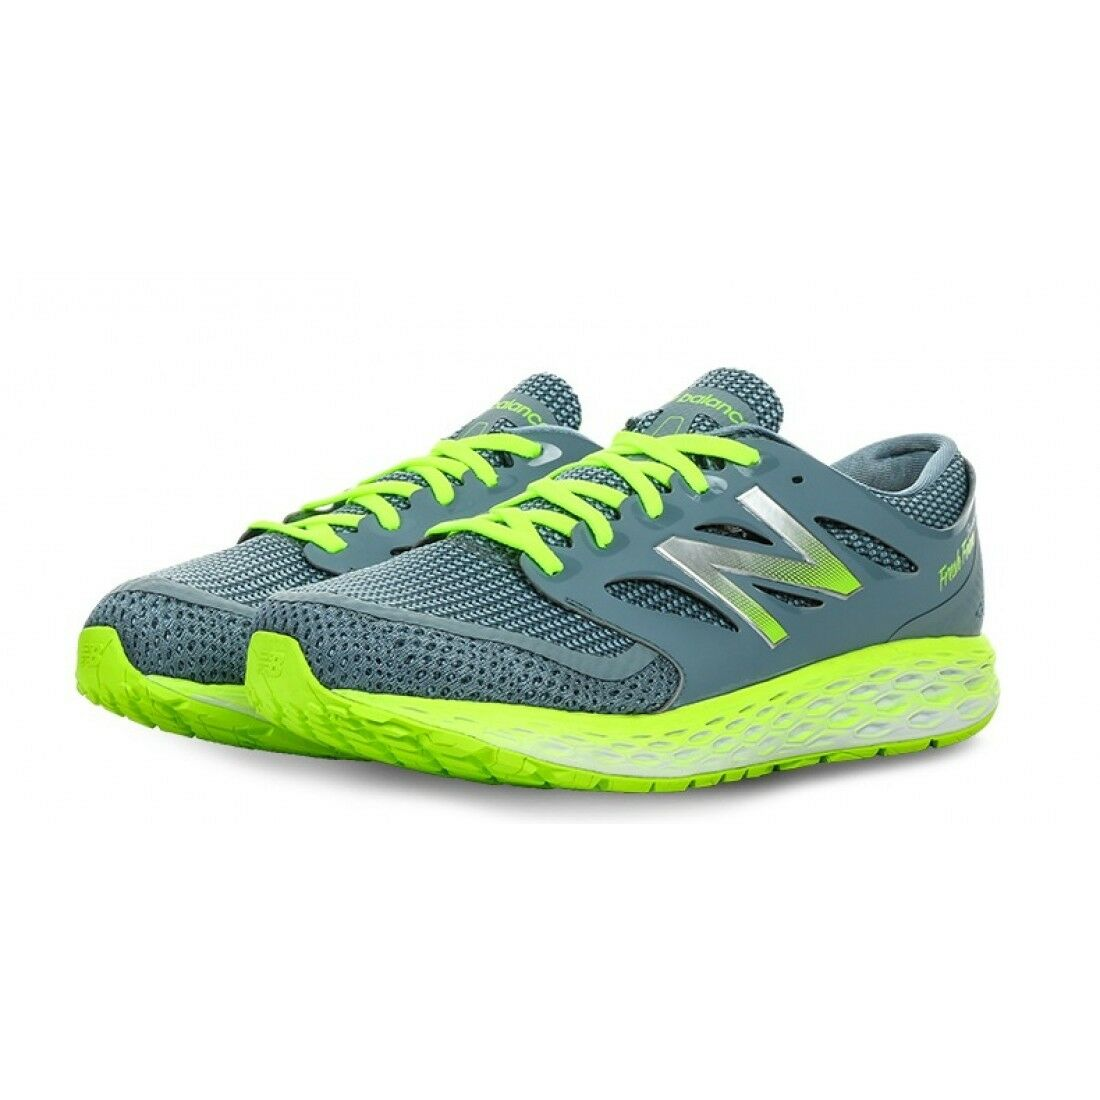 New Balance Fresh Foam Boracay 2  MBORAGG2 Running Shoe Grey Green Uomo size 7